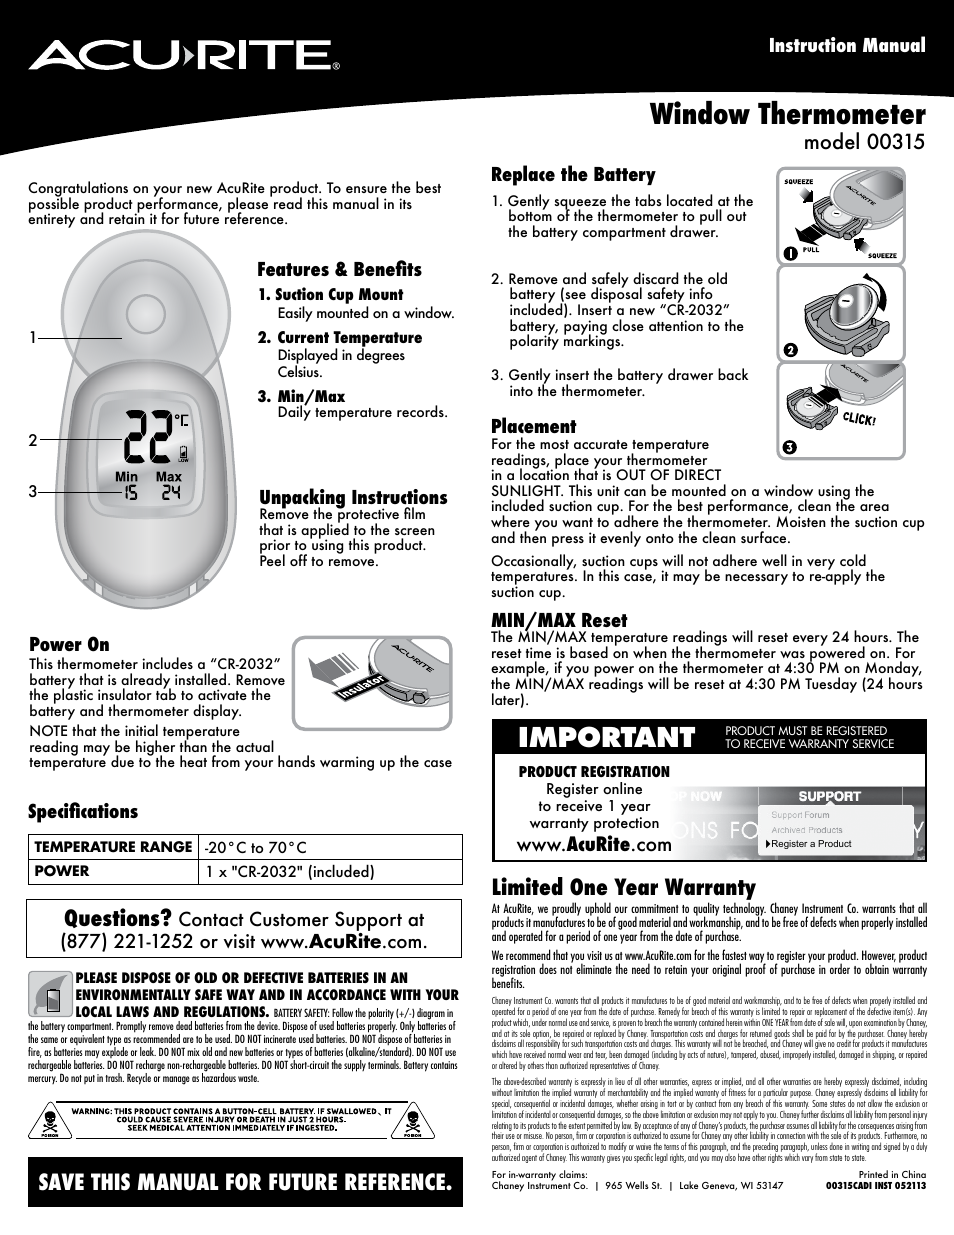 Acurite 00318 Thermometer User Manual Manual Guide